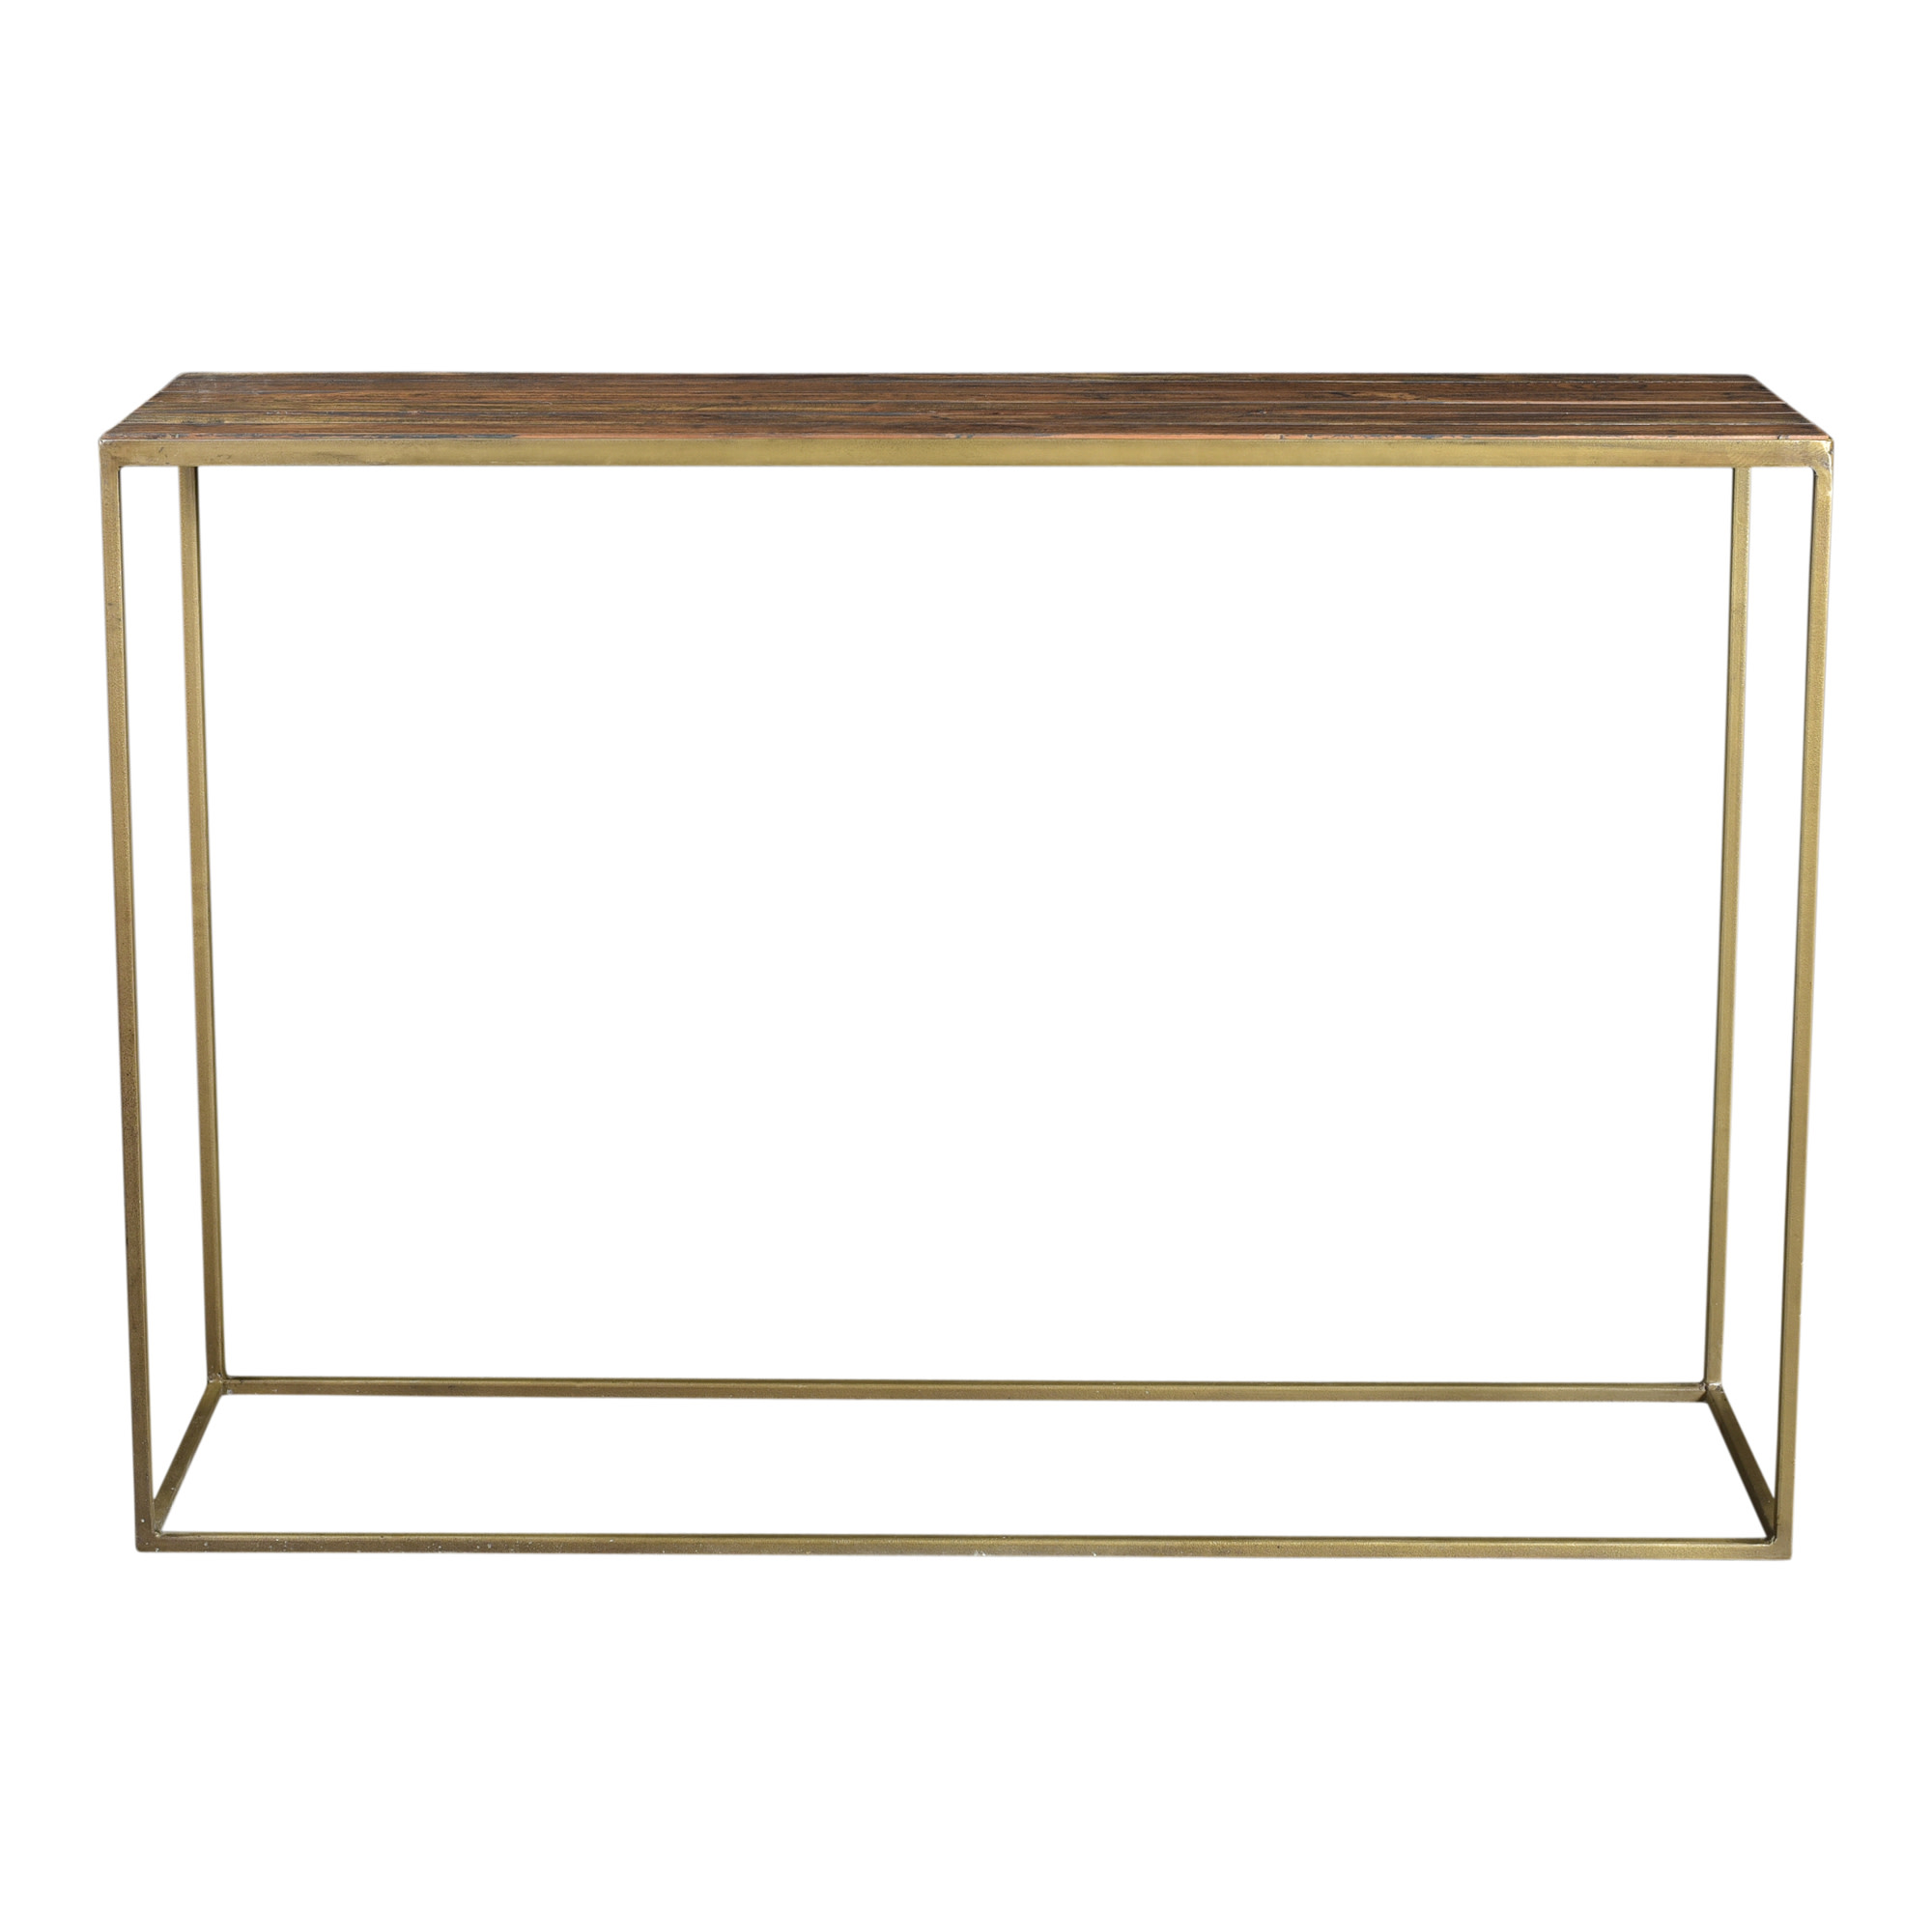 Moes Home Collection Dr 1302 Meadow 44 Wide Wood Top Iron Console